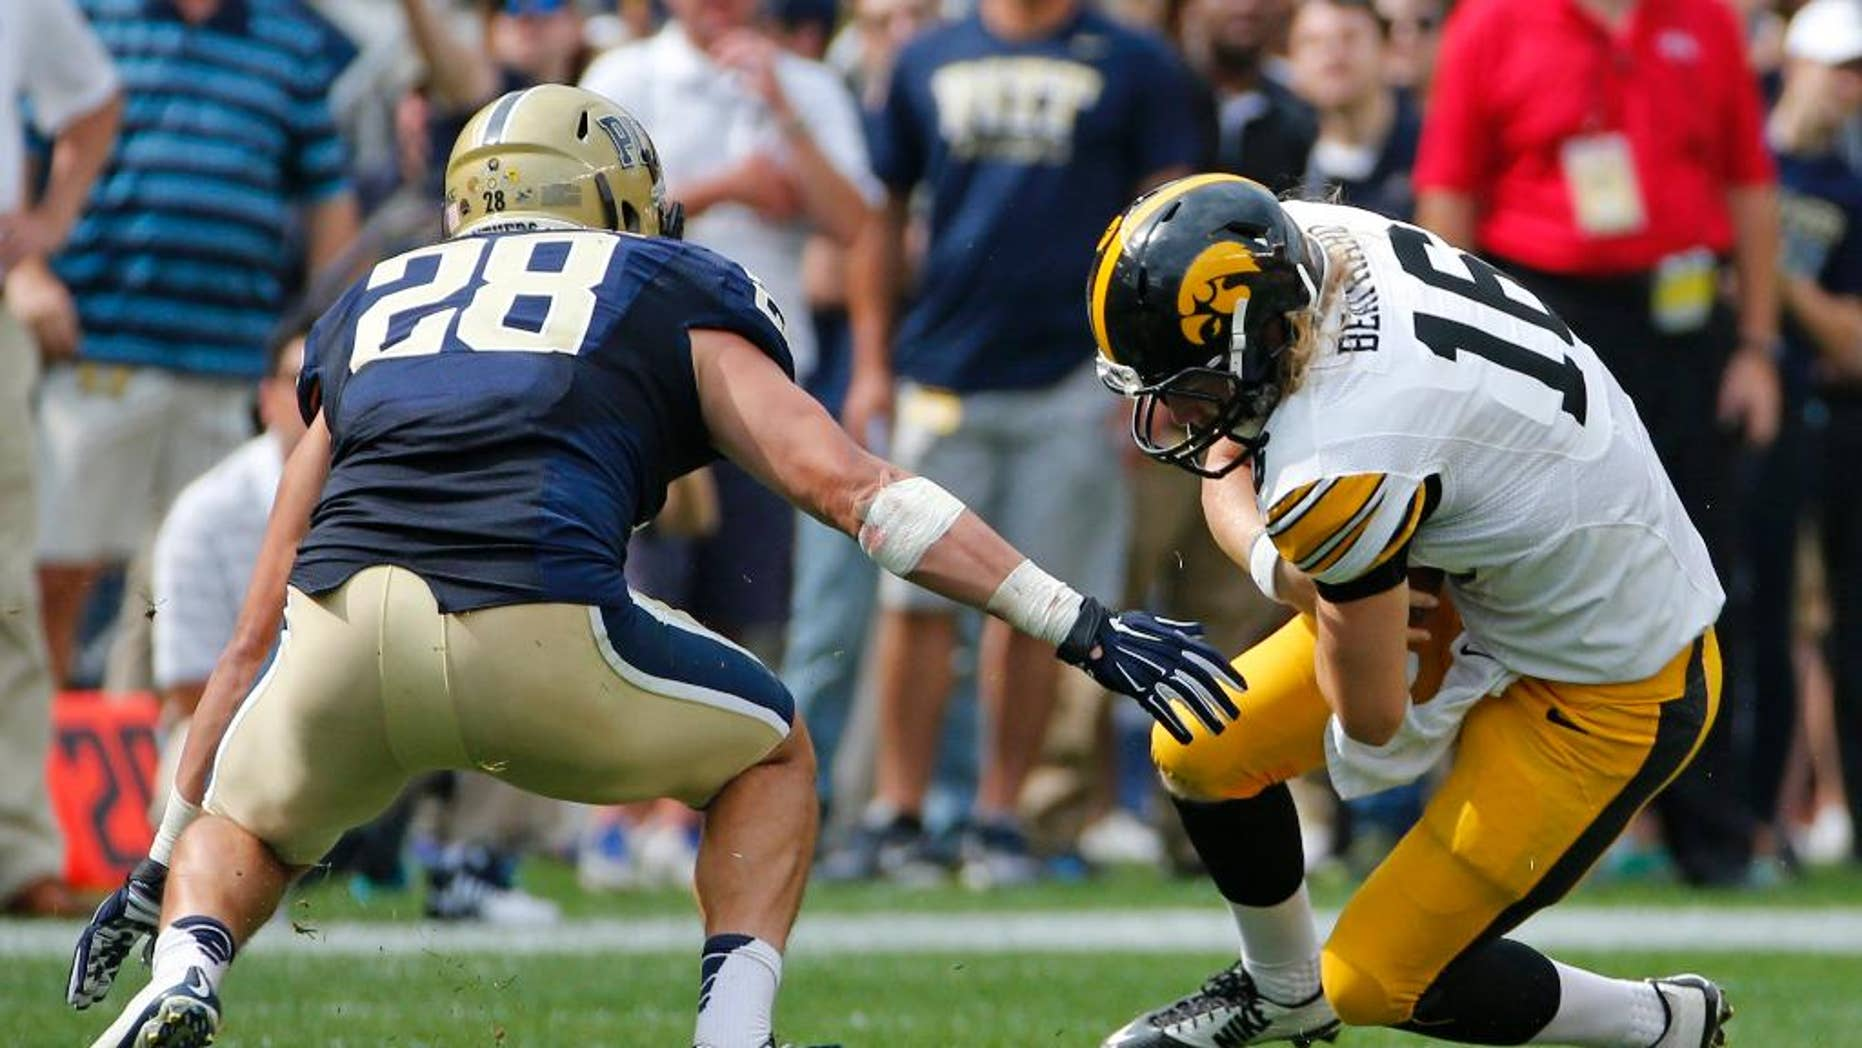 Iowa quarterback C.J. Beathard (16) slides before being tackled by Pitt linebacker Anthony Gonzalez (28) after a short gain during the fourth quarter of an NCAA college football game in Pittsburgh, Saturday, Sept. 20, 2014. Iowa won 24-20. (AP Photo/Gene Puskar)